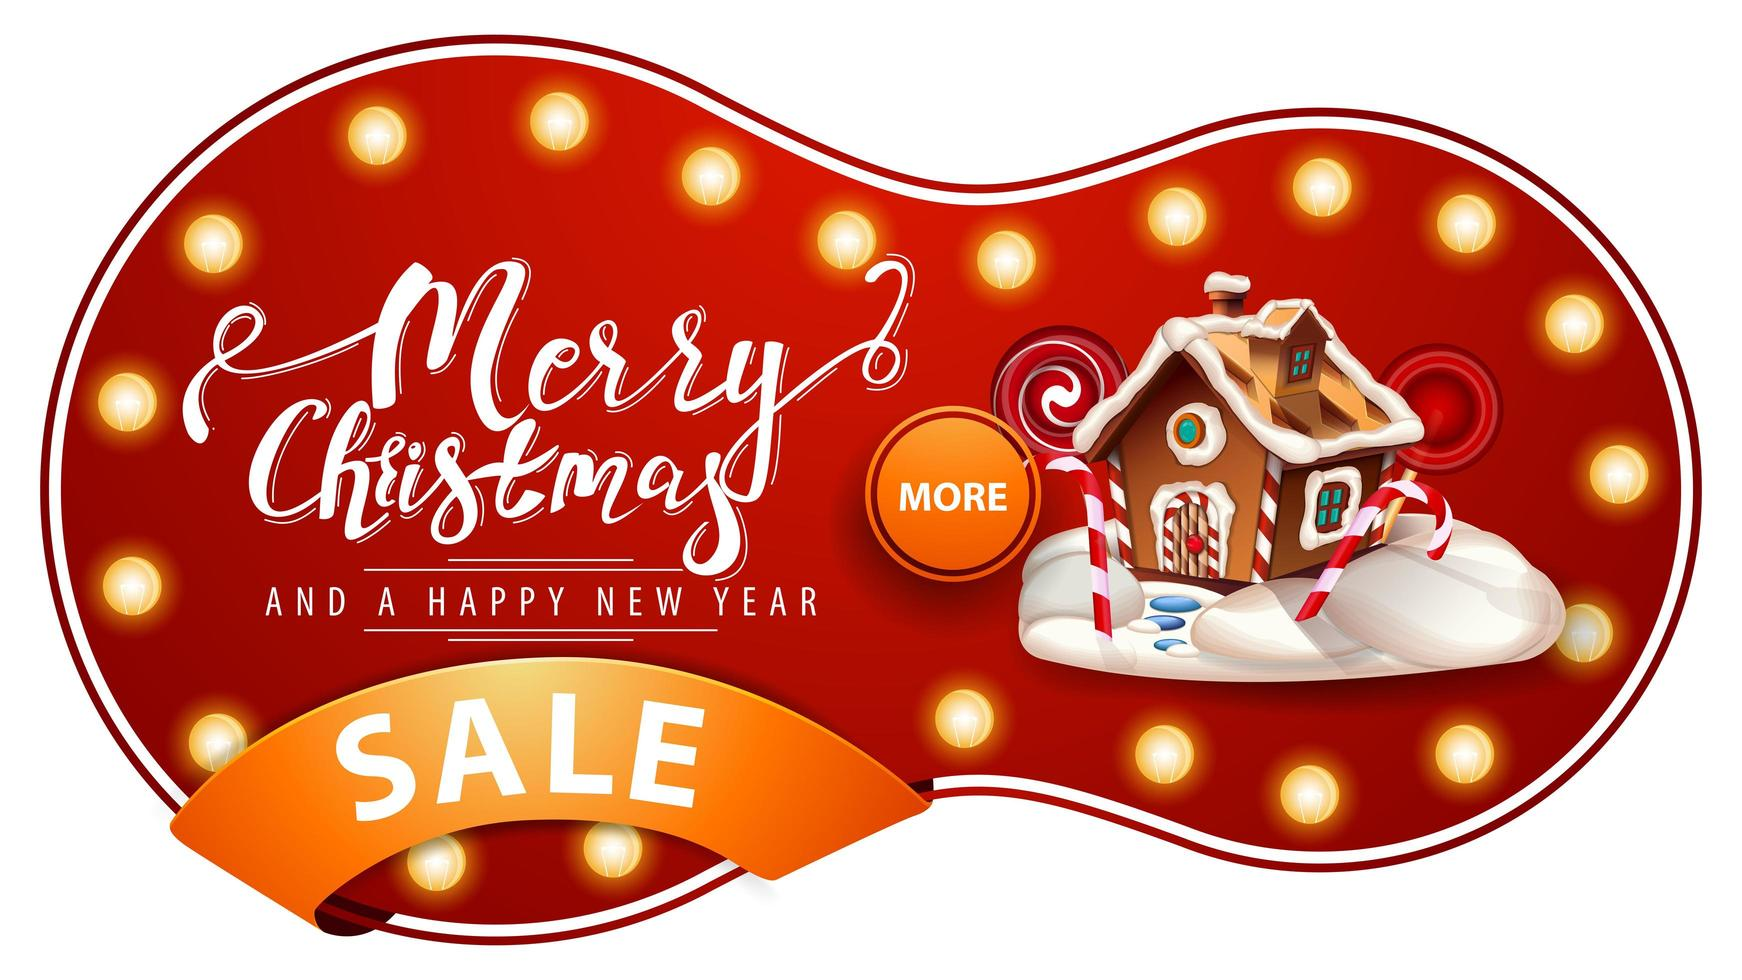 Merry Christmas and Happy New Year, red discount banner with light bulbs, orange ribbon and Christmas gingerbread house vector